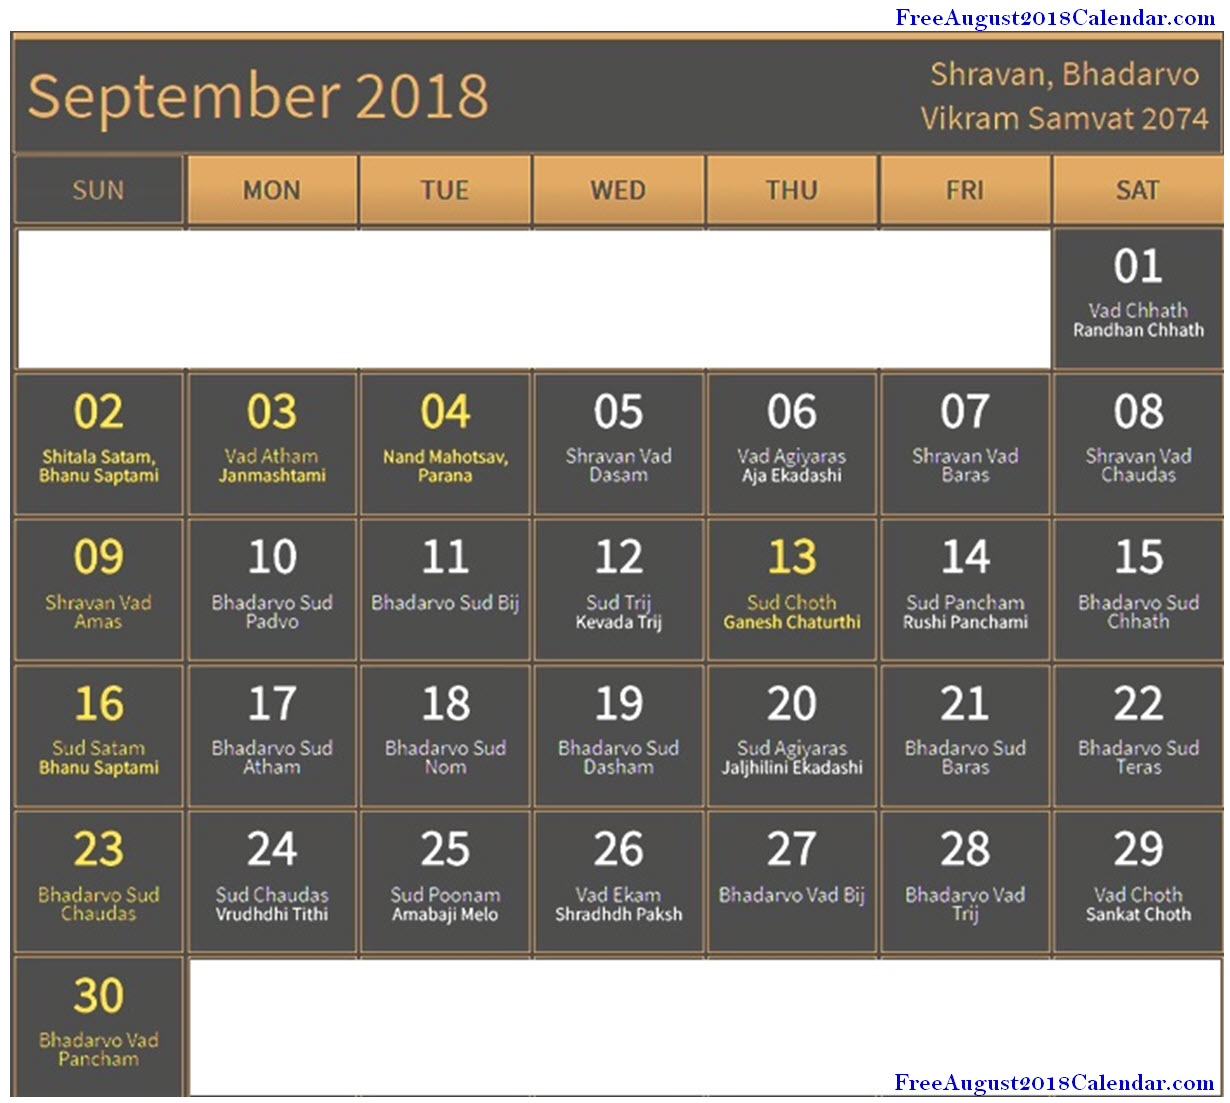 September 2018 Calendar with Festival Dates